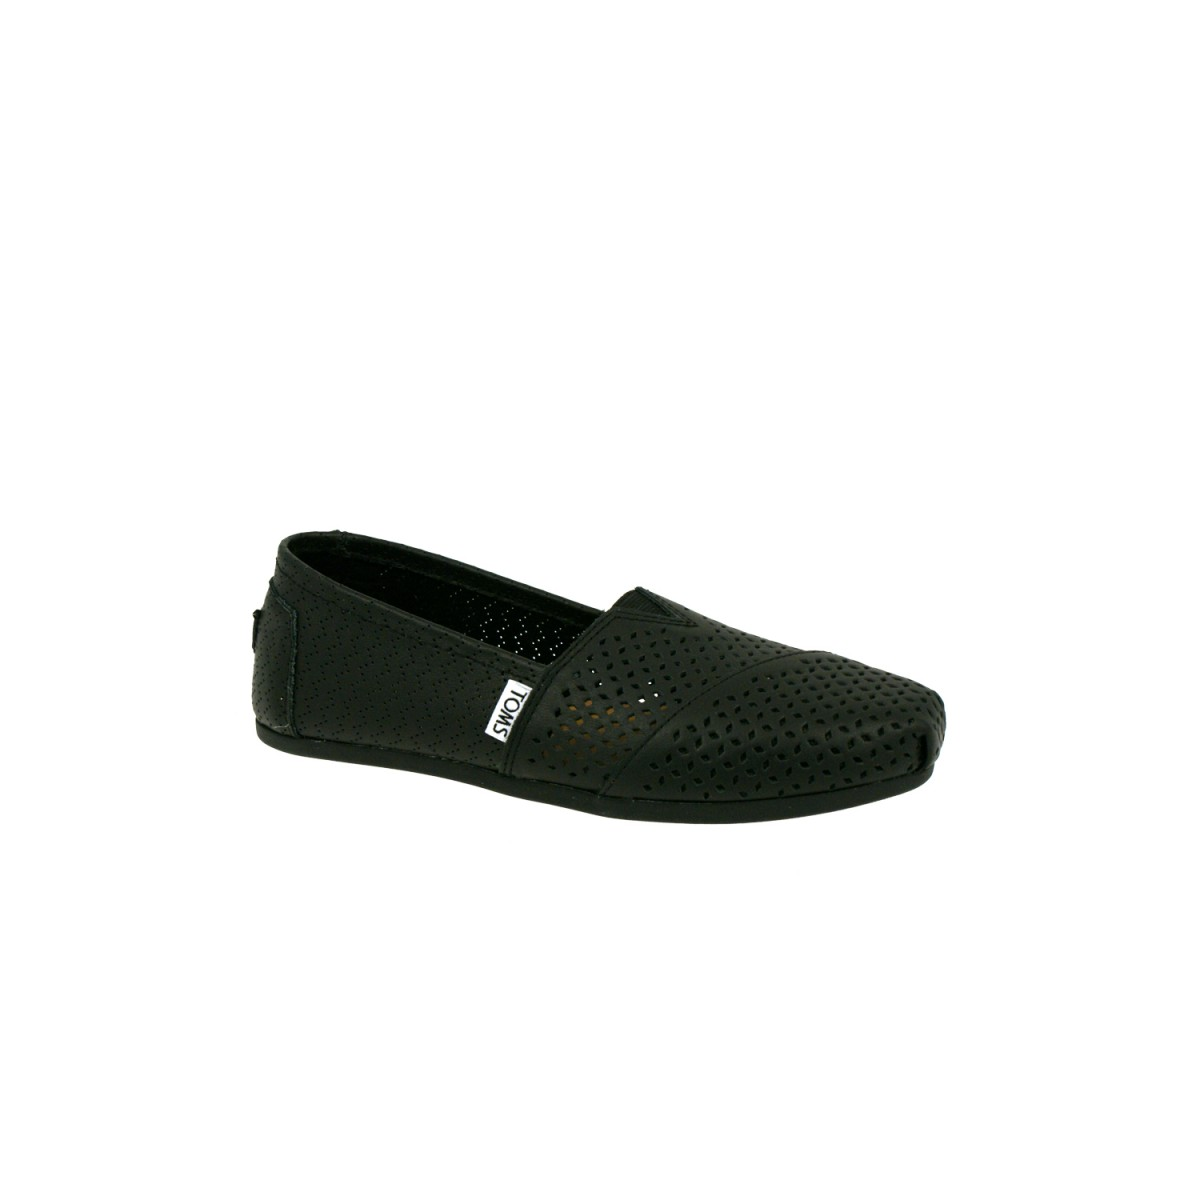 TOMS Classic Perforated Leather Black-32